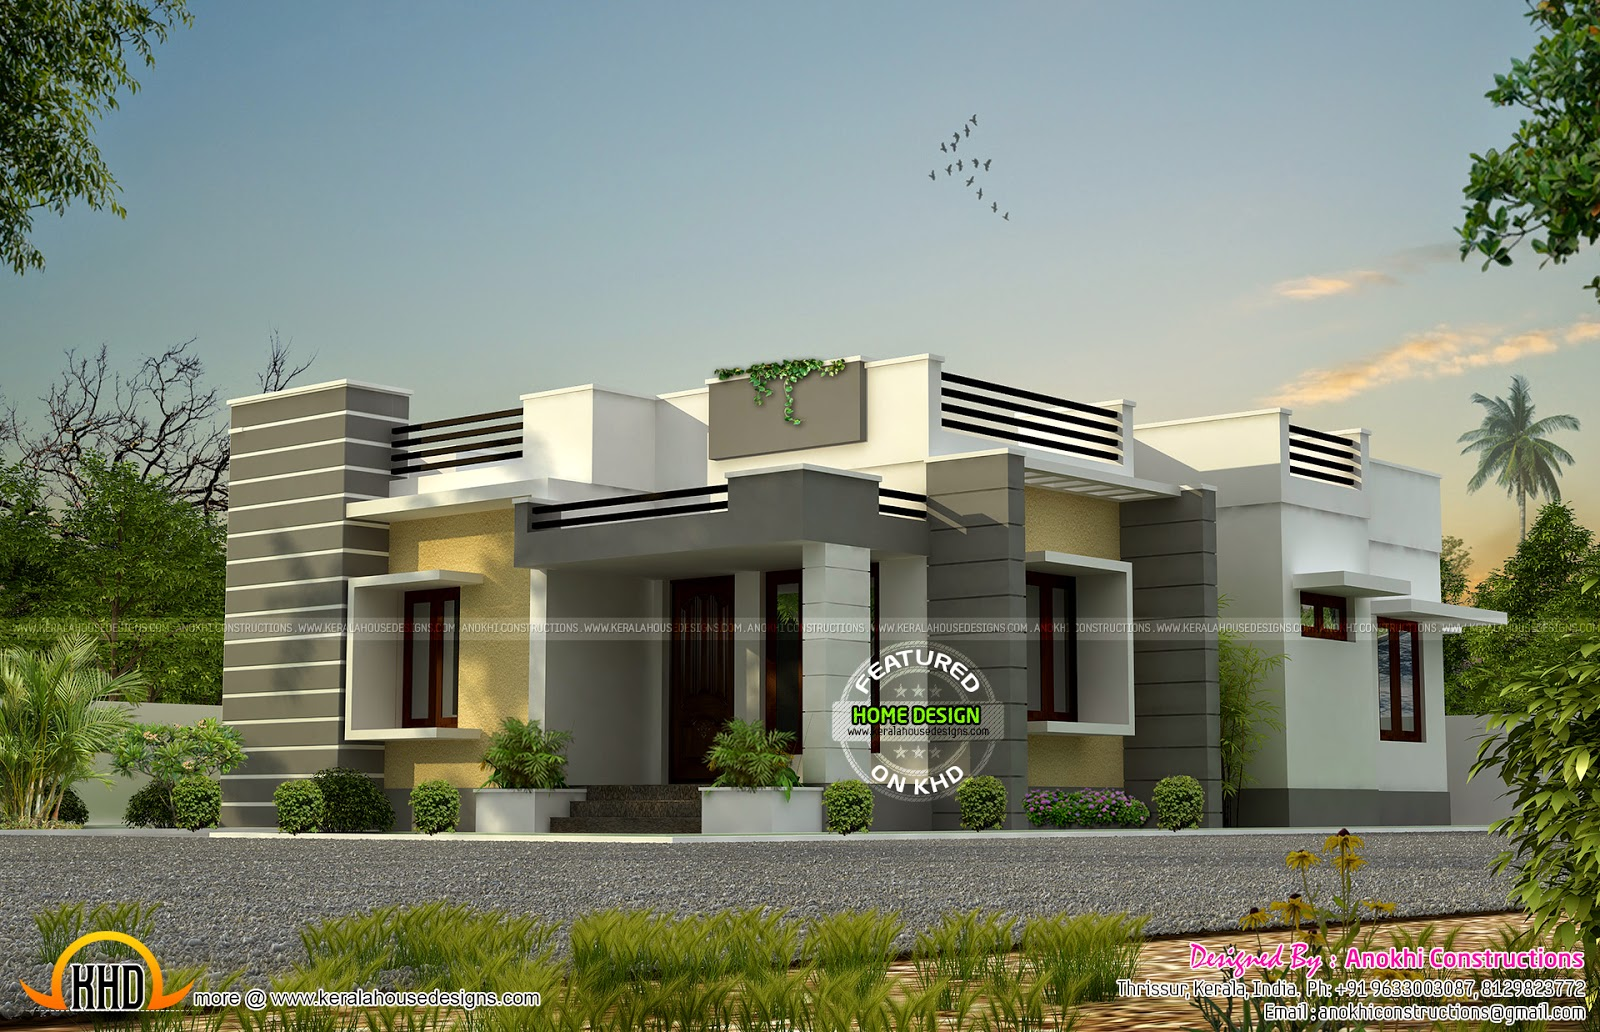 Nice budget house design kerala home design and floor plans - Nice house designs ...